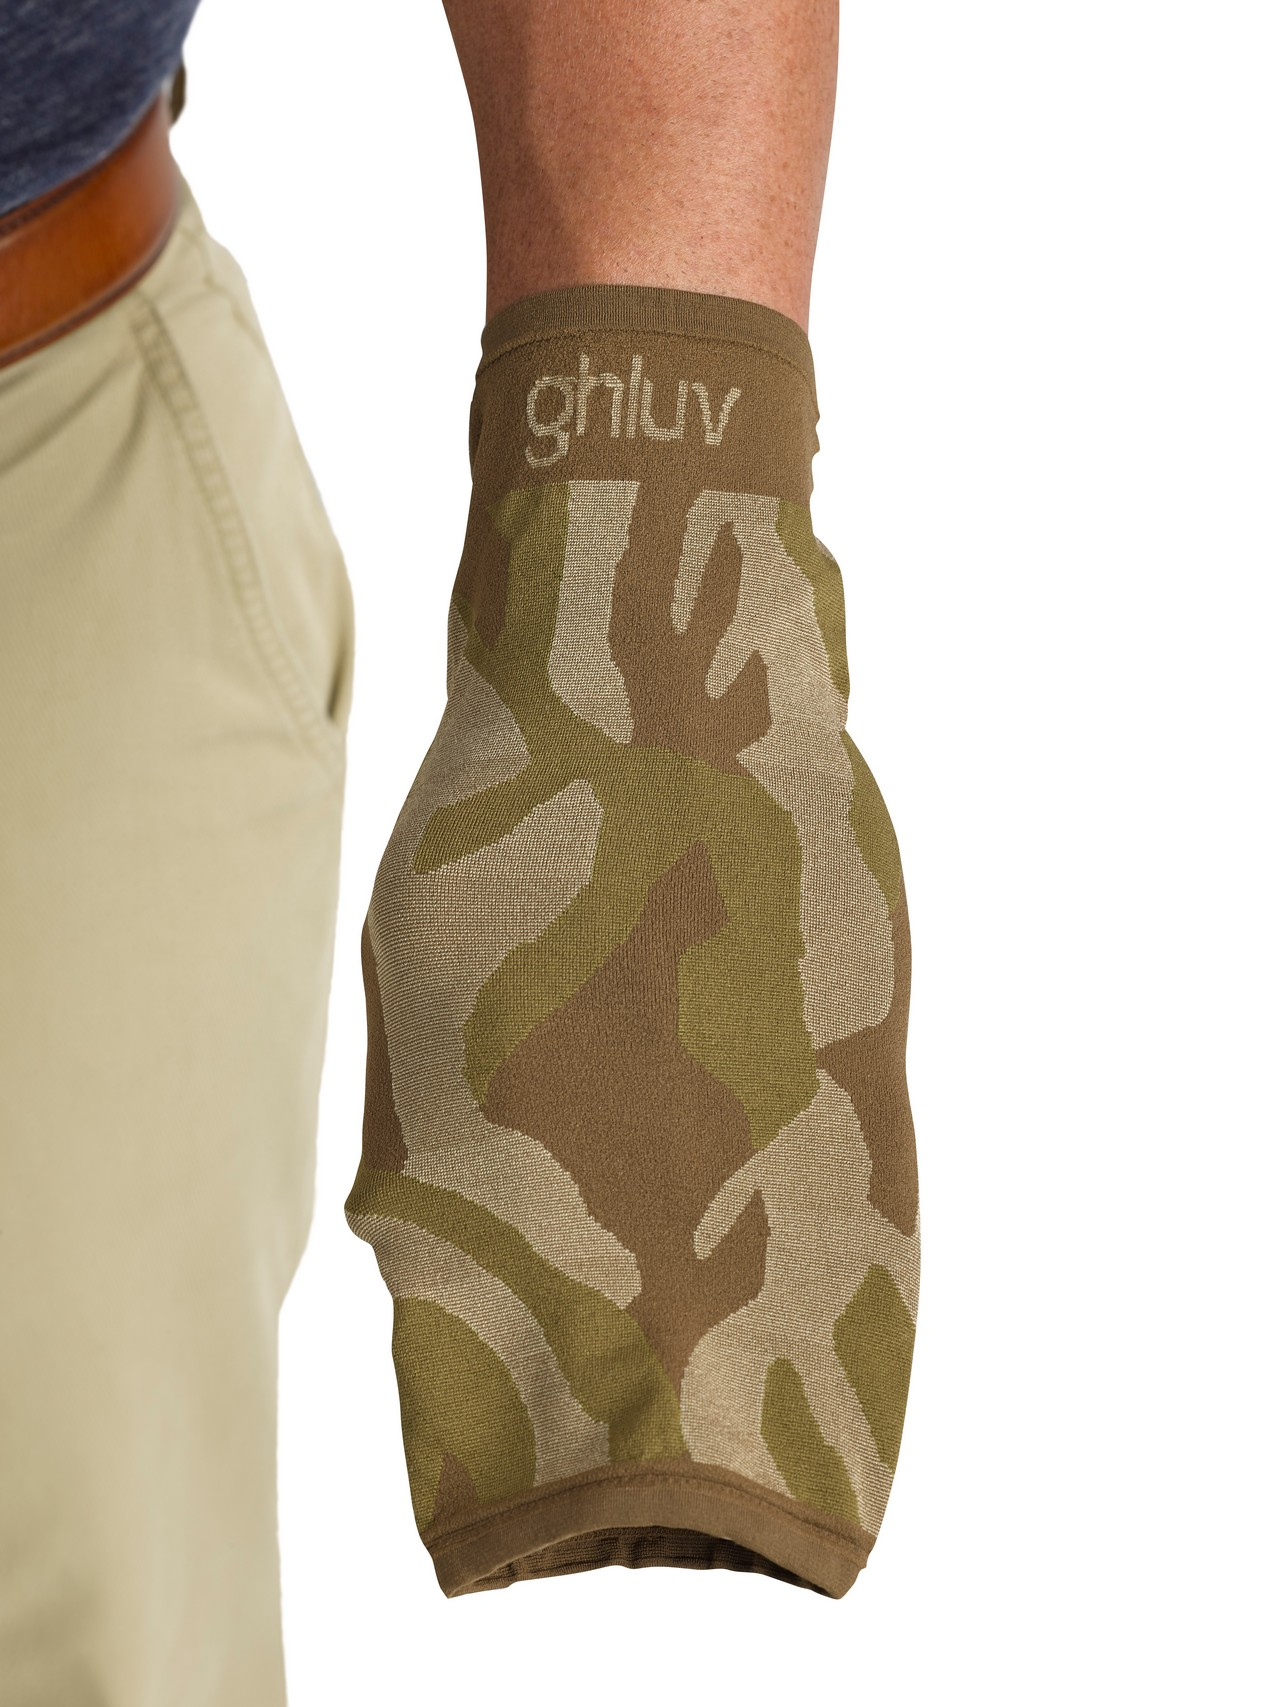 Ghluv Fashion Antimicrobial Hand Protector (one pair), Camo